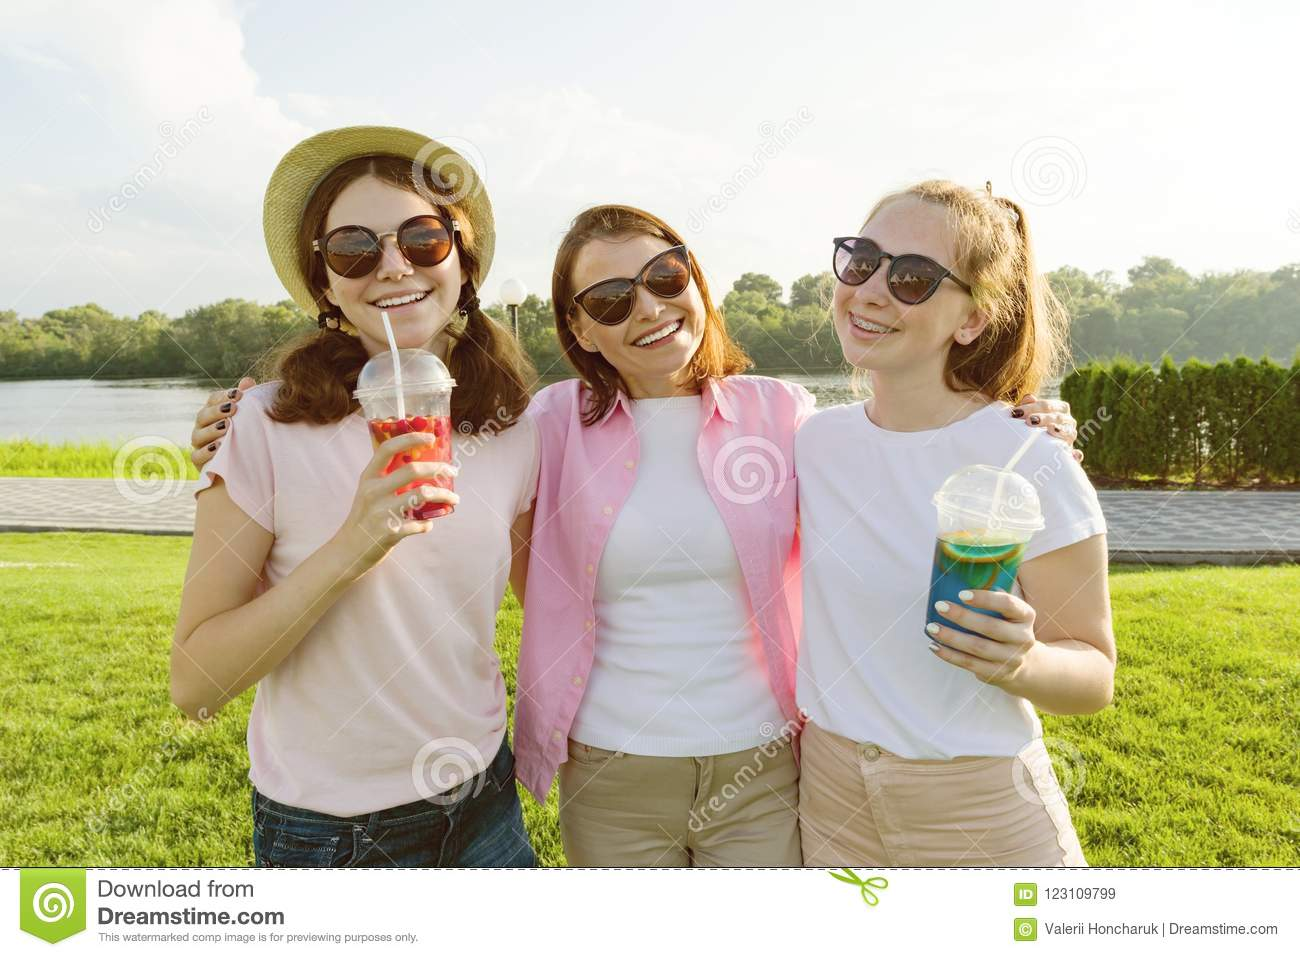 Portrait of happy mother and daughters teenagers 14 and 16 years old, girls with summer drinks. Background nature, recreation area